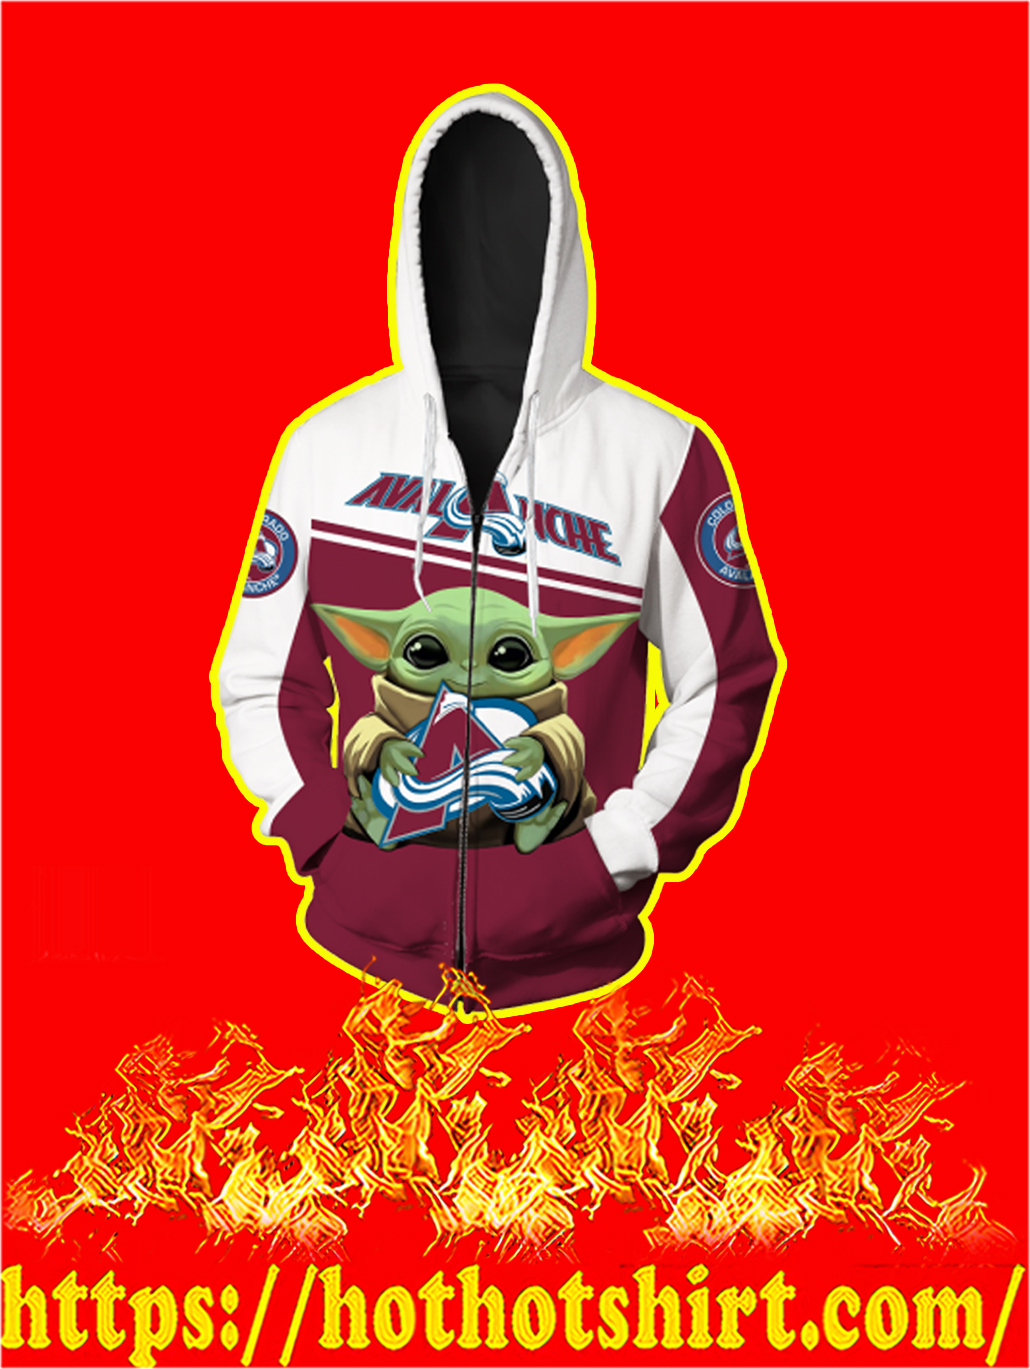 Colorado Avalanche Baby Yoda All Over Print Zip Hoodie